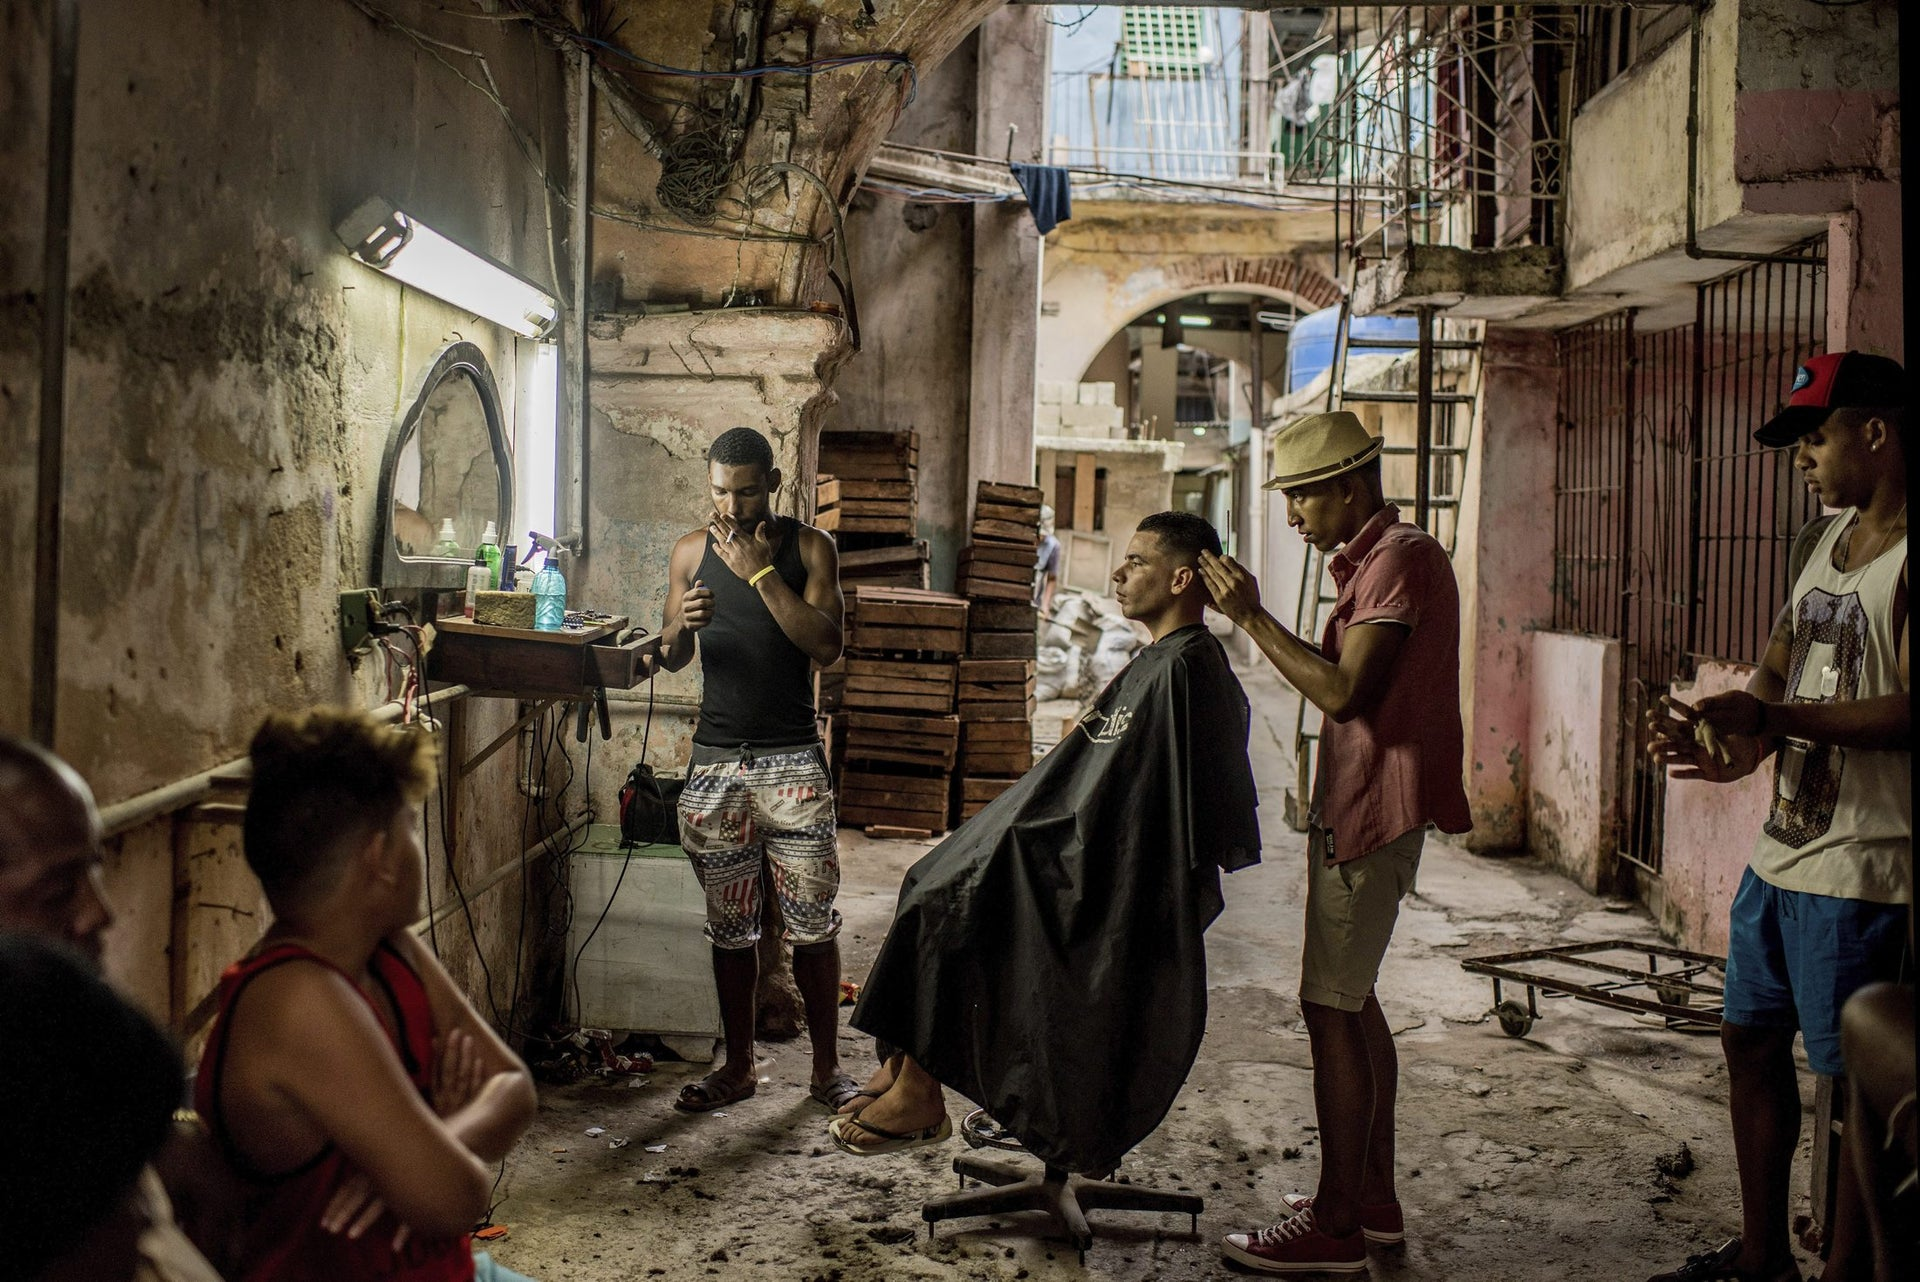 Daily Life, first prize stories - A weathered barber shop in Old Havana, Cuba.